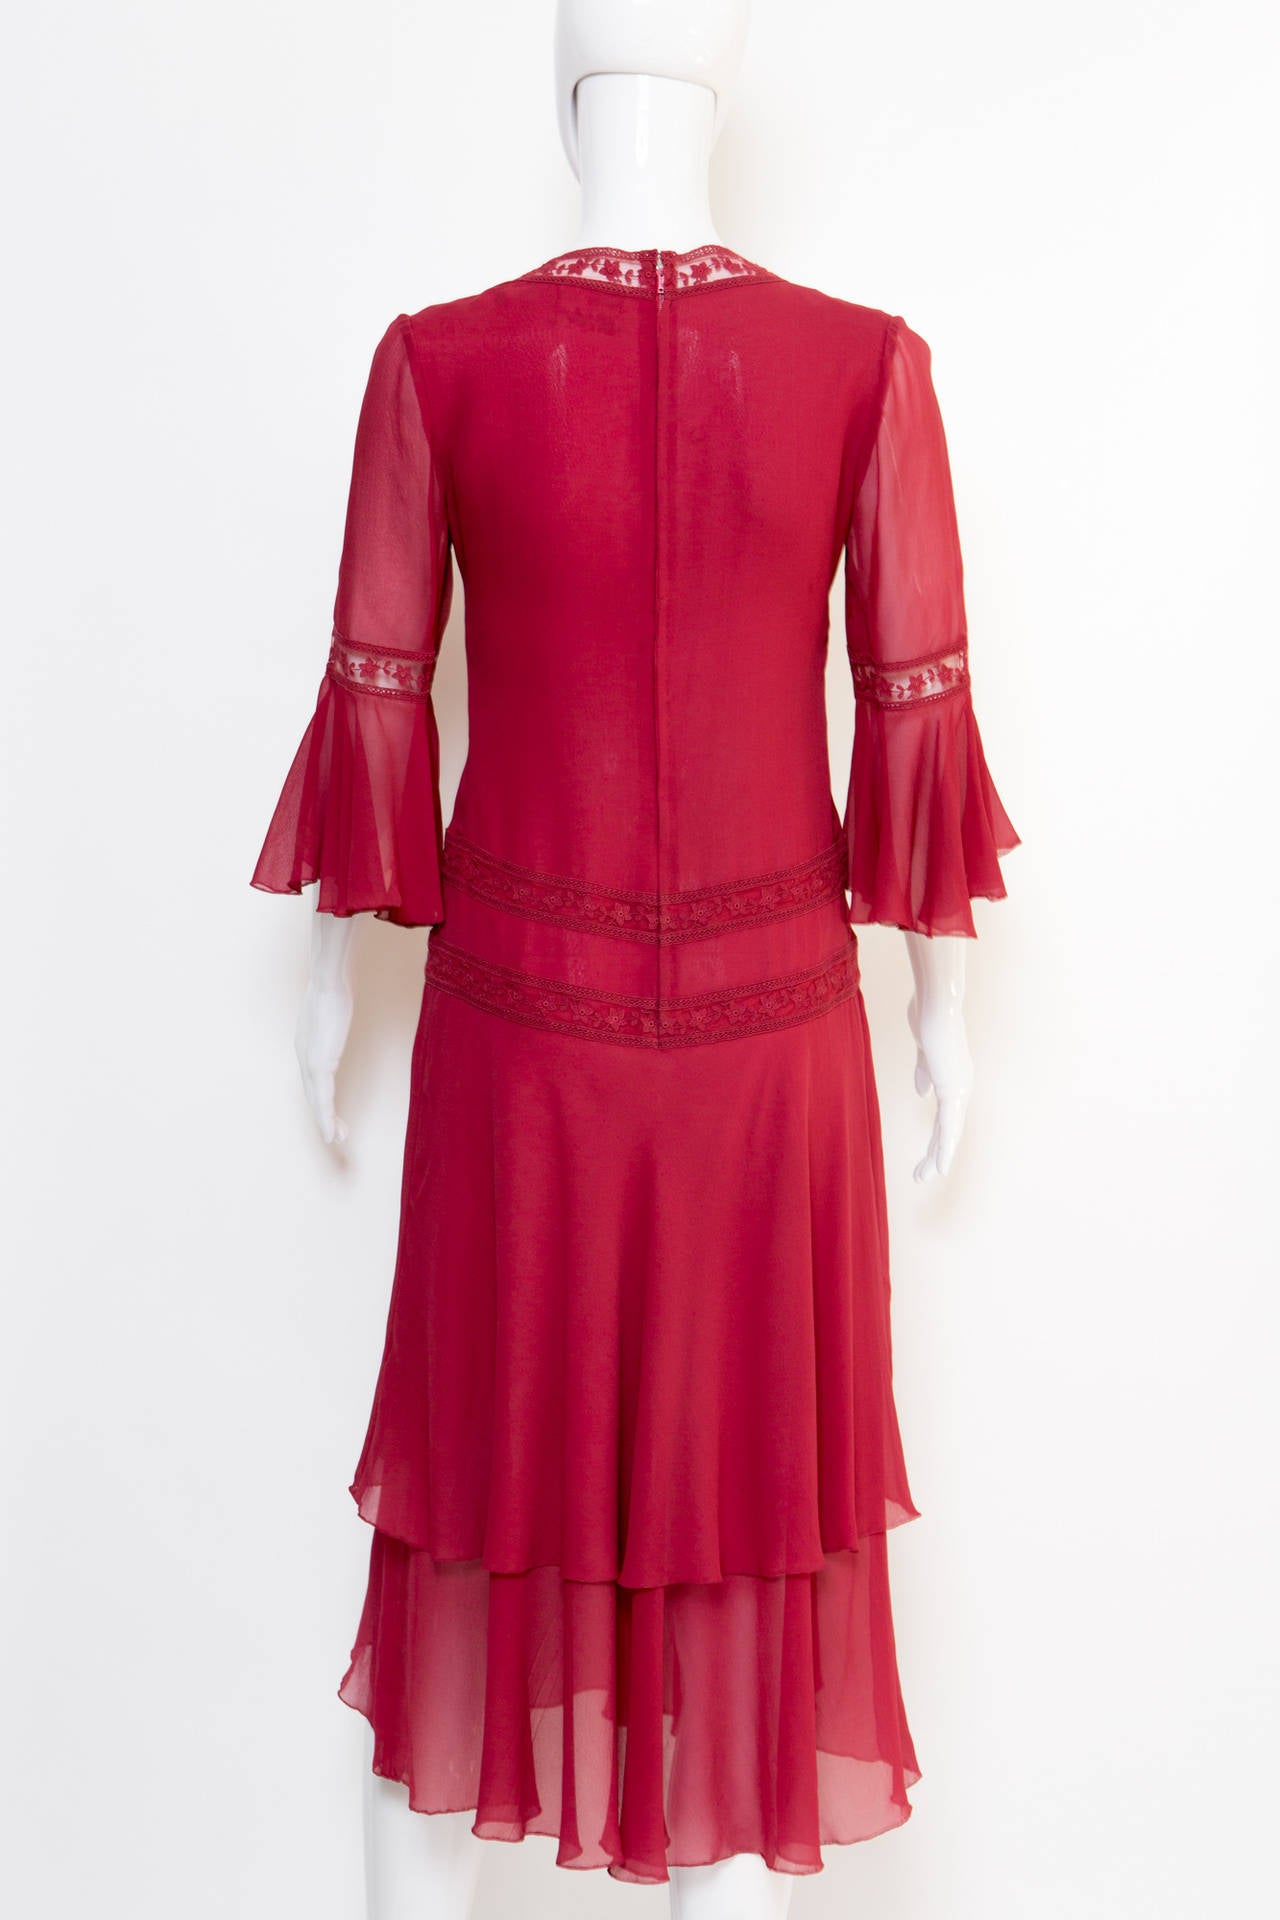 1970s Valentino Red  Wine Cocktail Dress 4